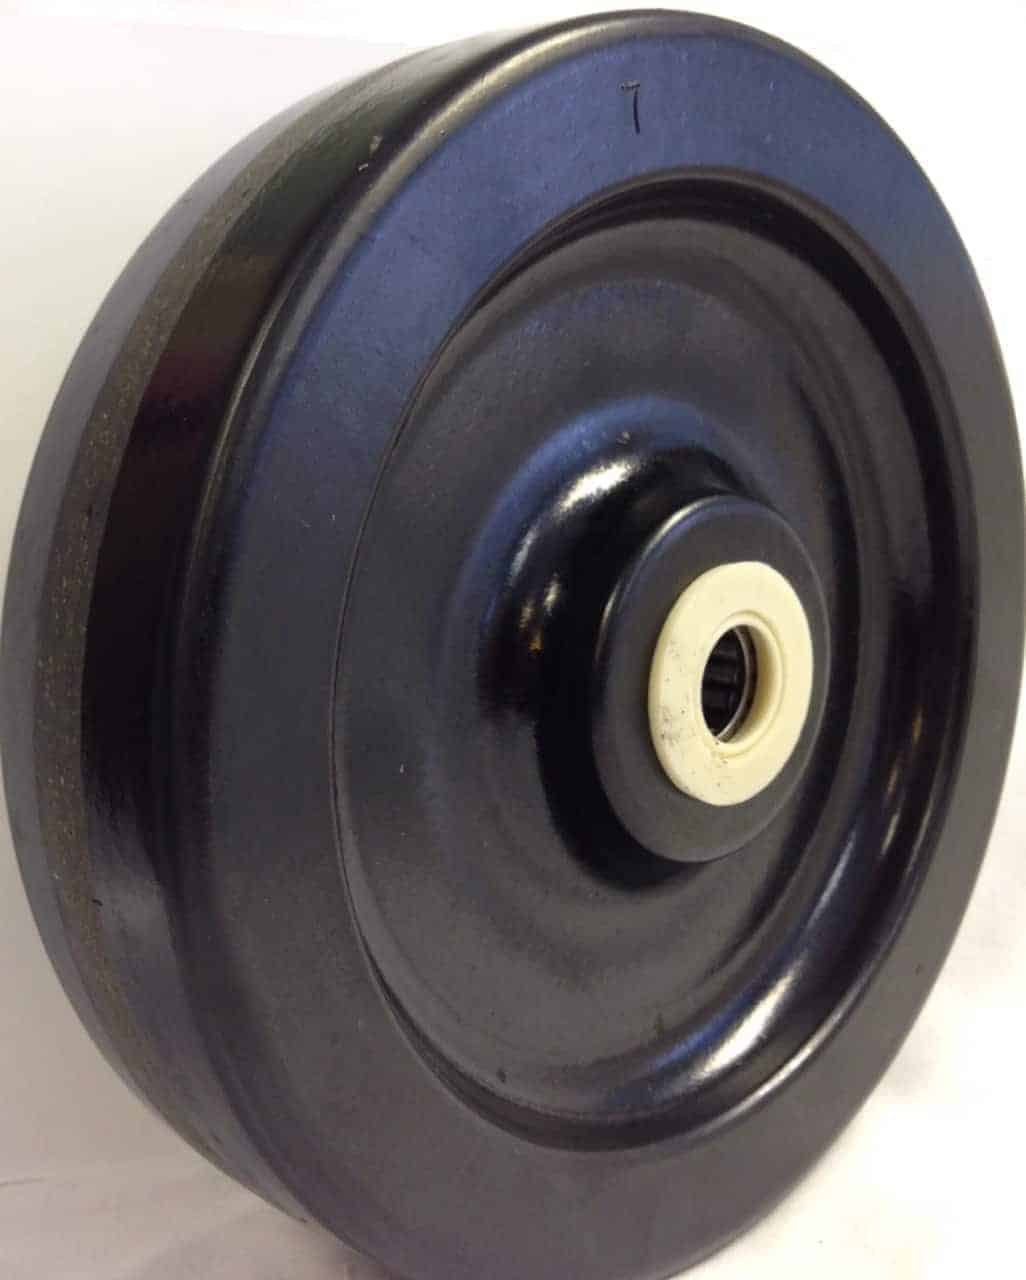 18″ Phenolic Wheel With 3-1/4″ Hub 1″ Roller Bearing 3500 Lbs Capacity